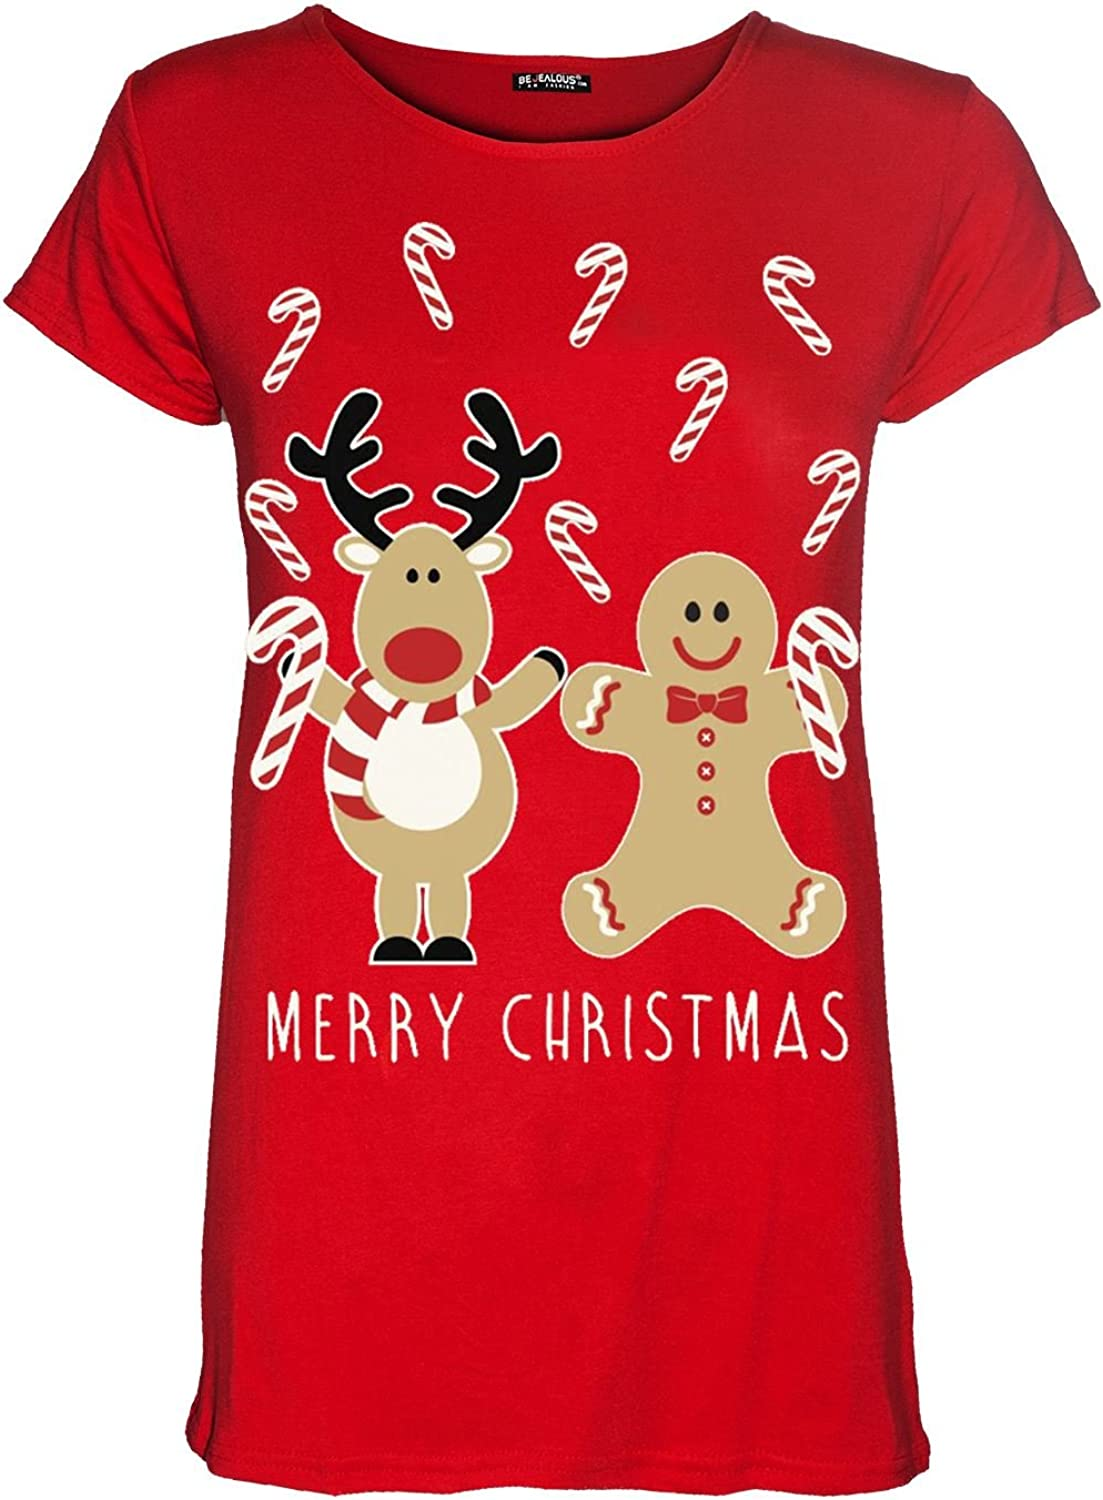 Womens Ladies Christmas Xmas Cap Sleeve Reindeer Gingerbread Santa T Shirt Top